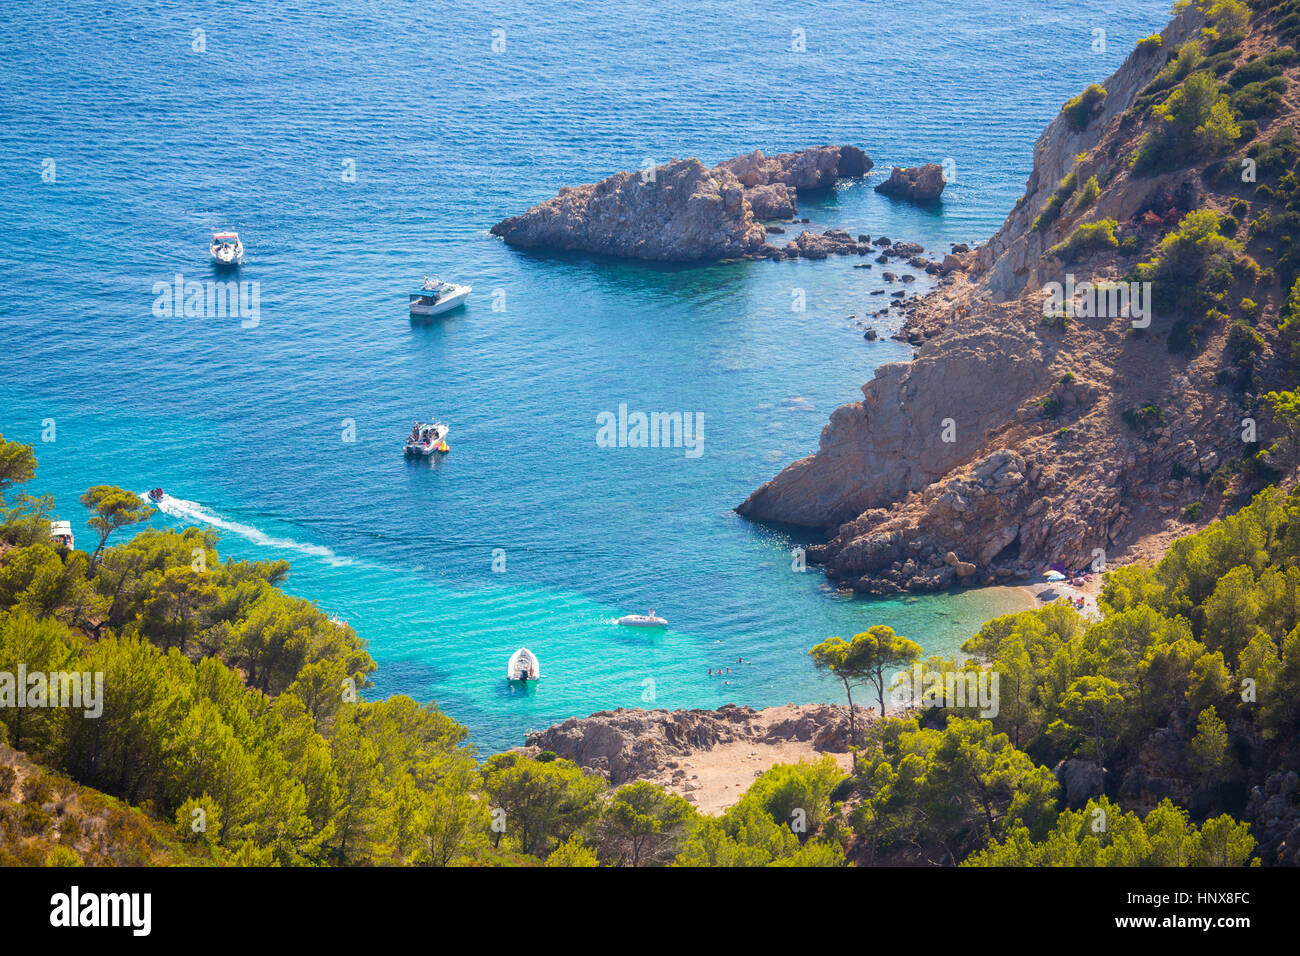 High angle view of yachts anchored in bay, Andratx, Majorca, Spain - Stock Image